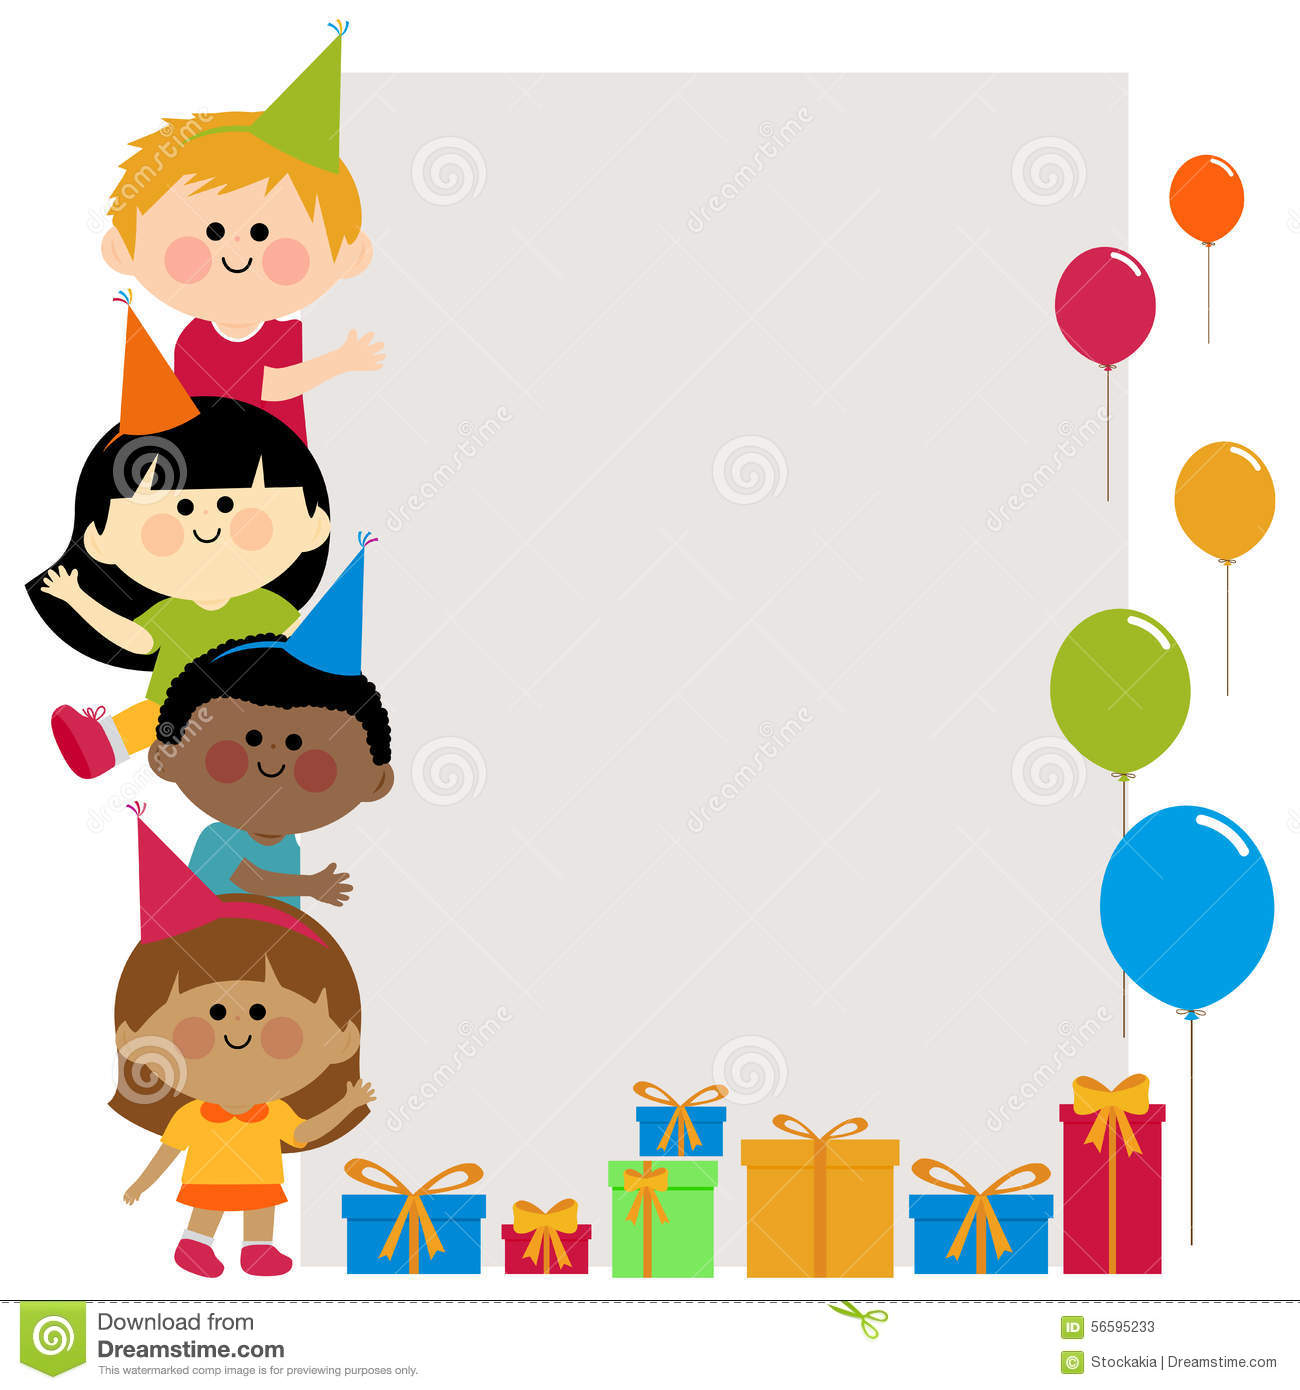 A Happy Multicultural Group Of Birthday Party Children With Hats Holding Blank Vertical Banner And Boxes Presents Balloons